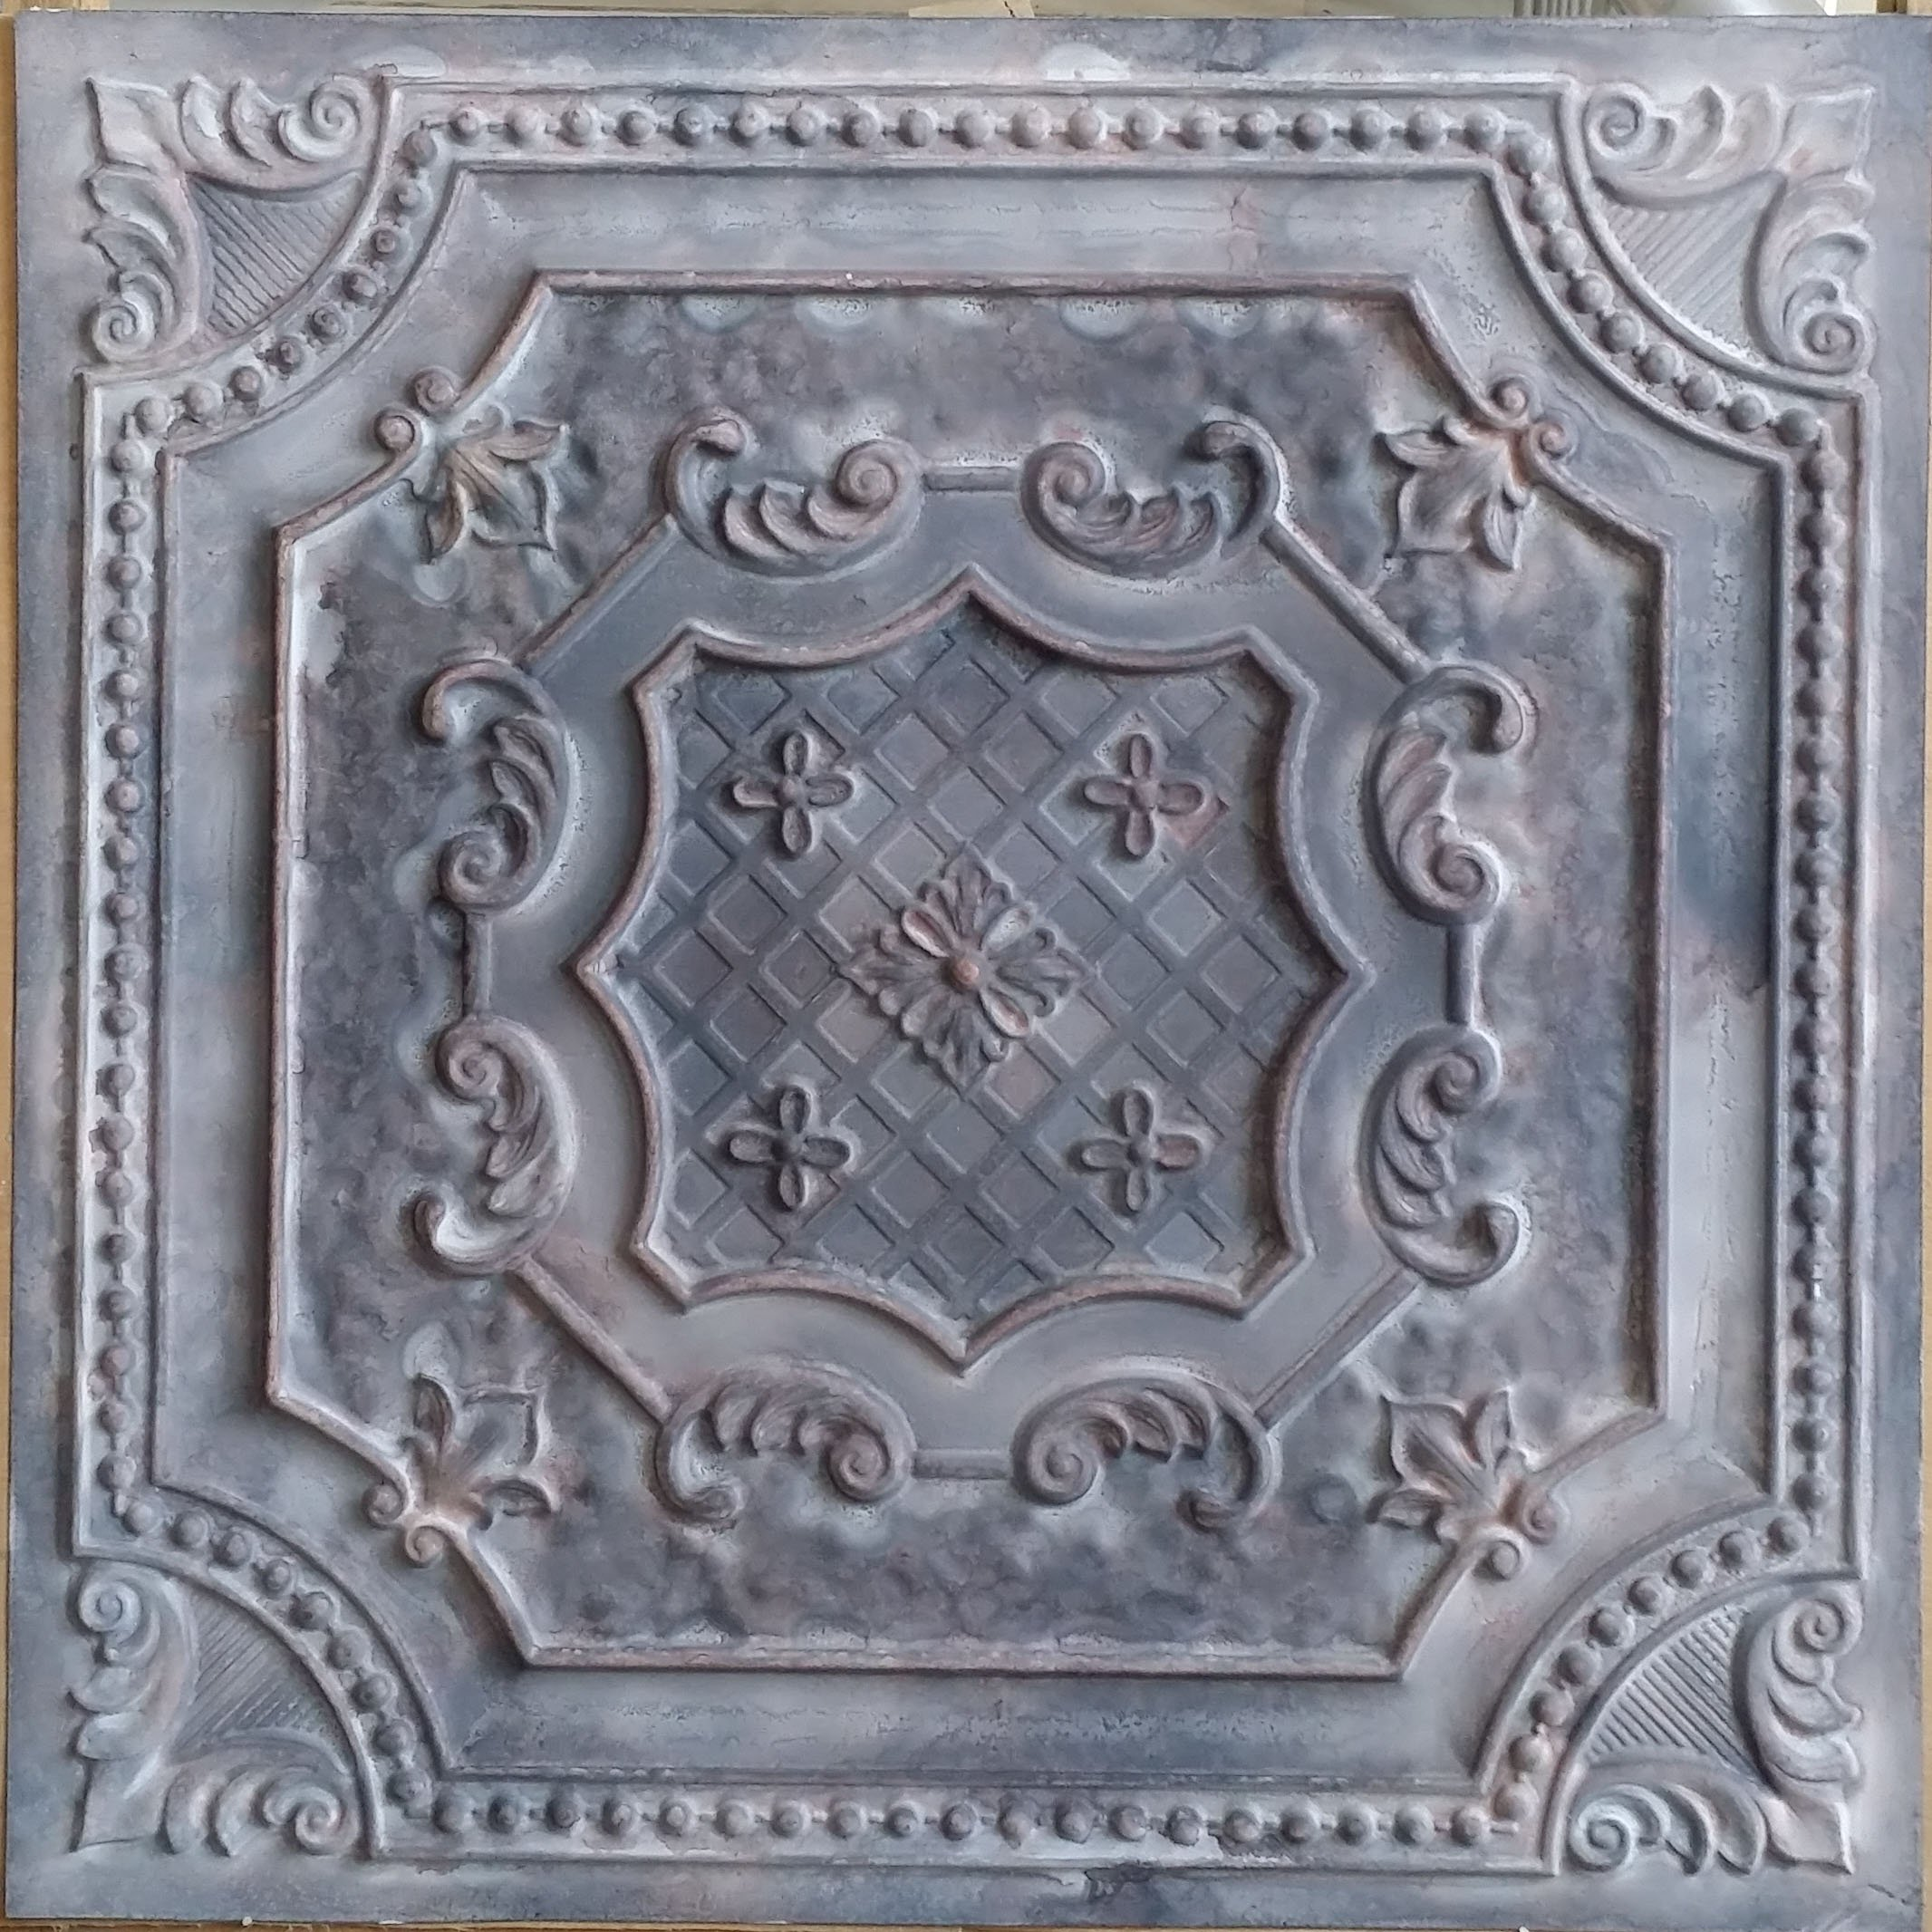 LASTDECOR Ceiling Tile Faux tin finishes Aged Wood Gray Cafe Decor Wall Panel PL04 Pack of 10pcs